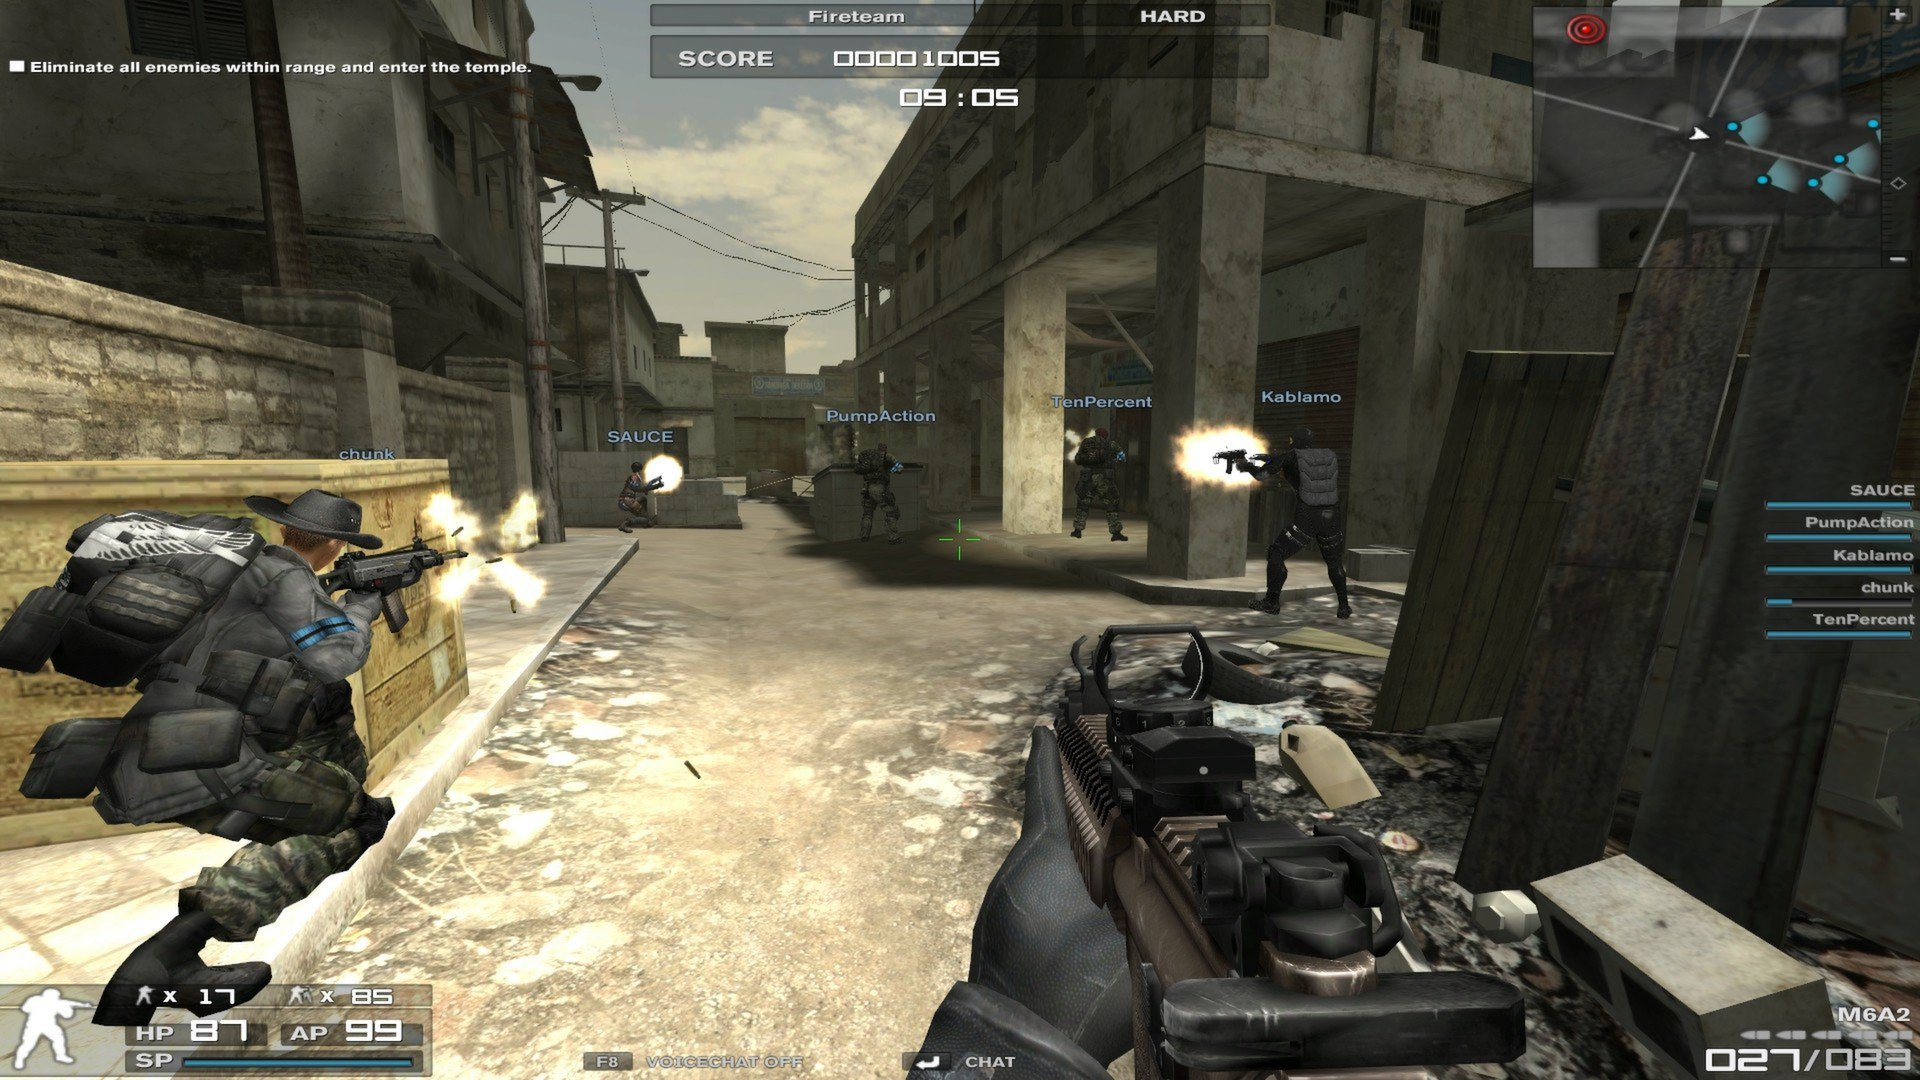 shooter-mmo-games-combat-arms-combat-screenshot.jpg (1920×1080)